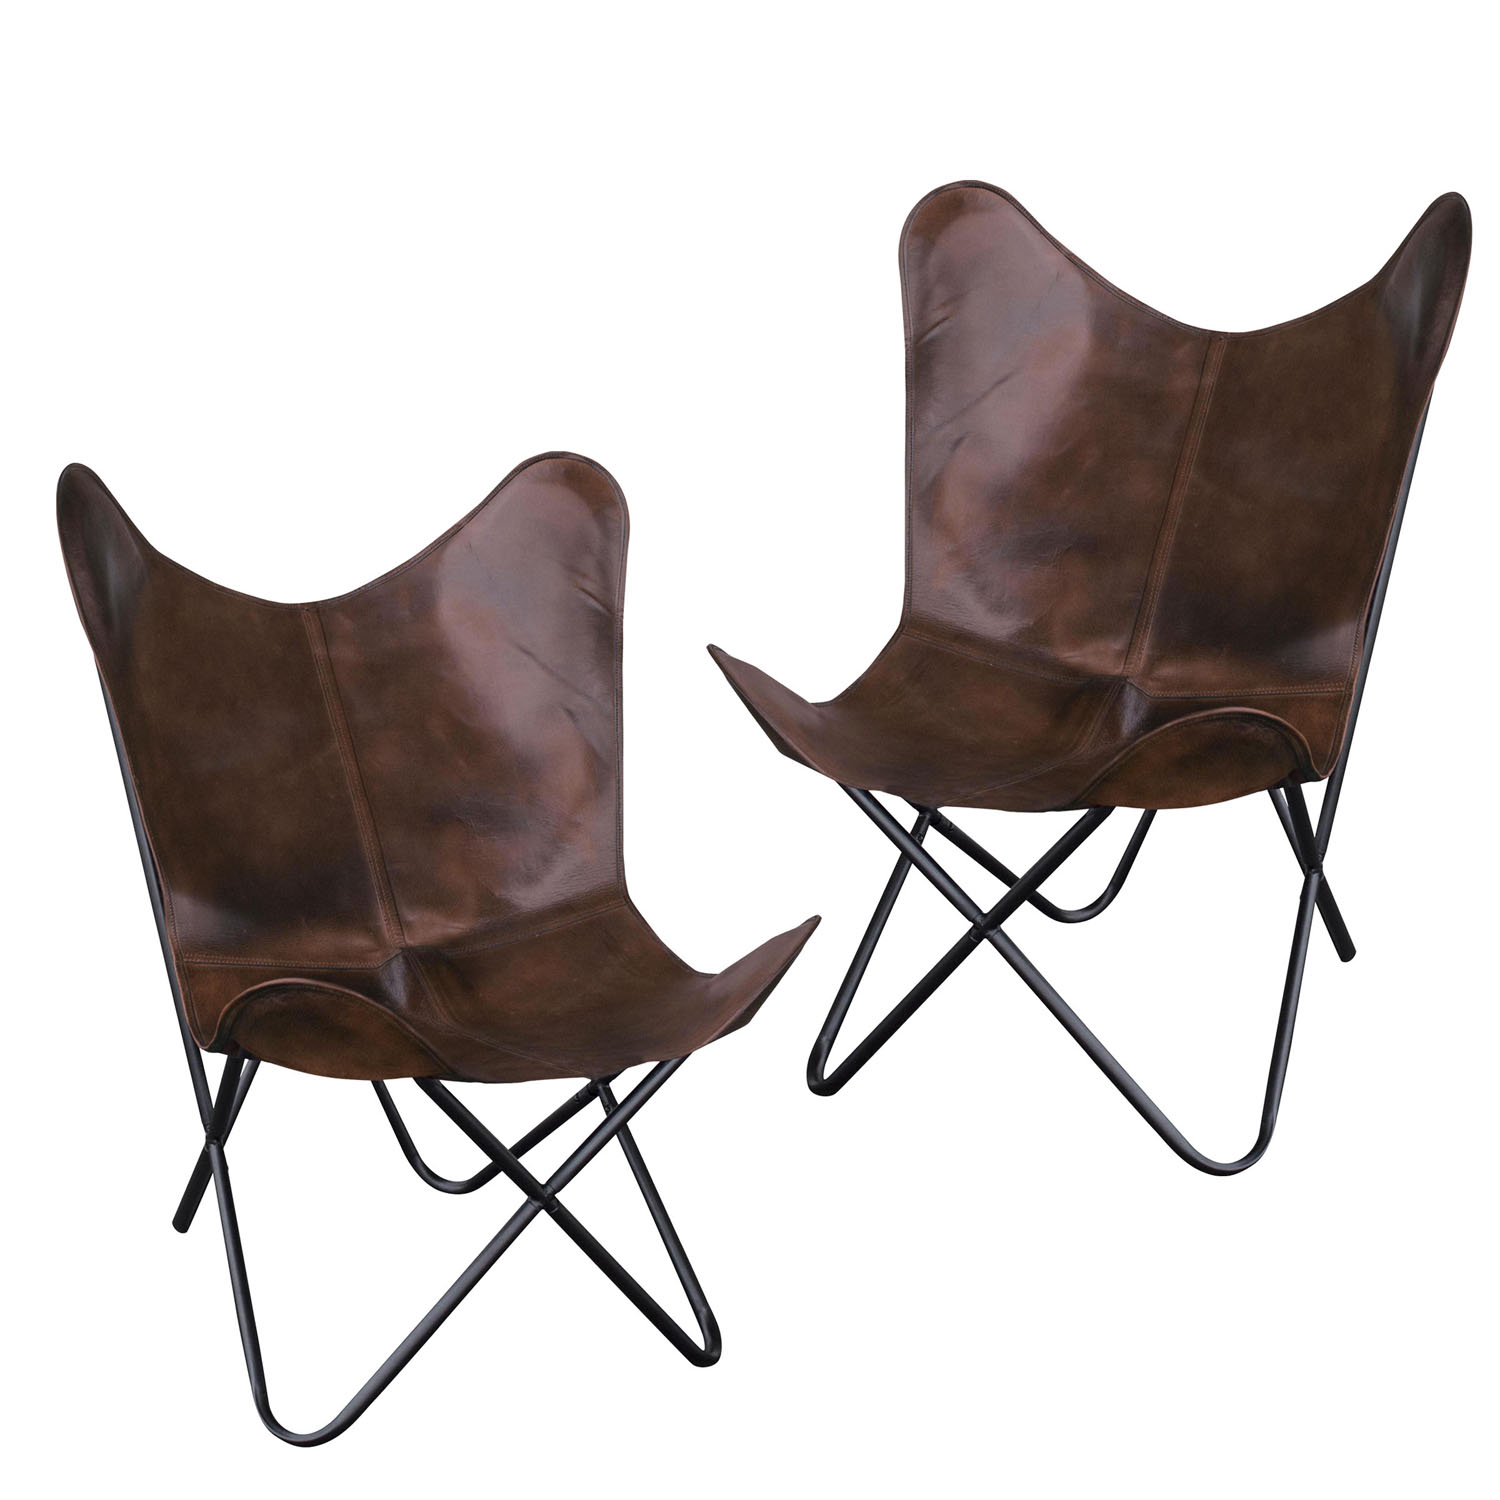 Natural Leather Butterfly Chair in Brown, 2 Piece Set